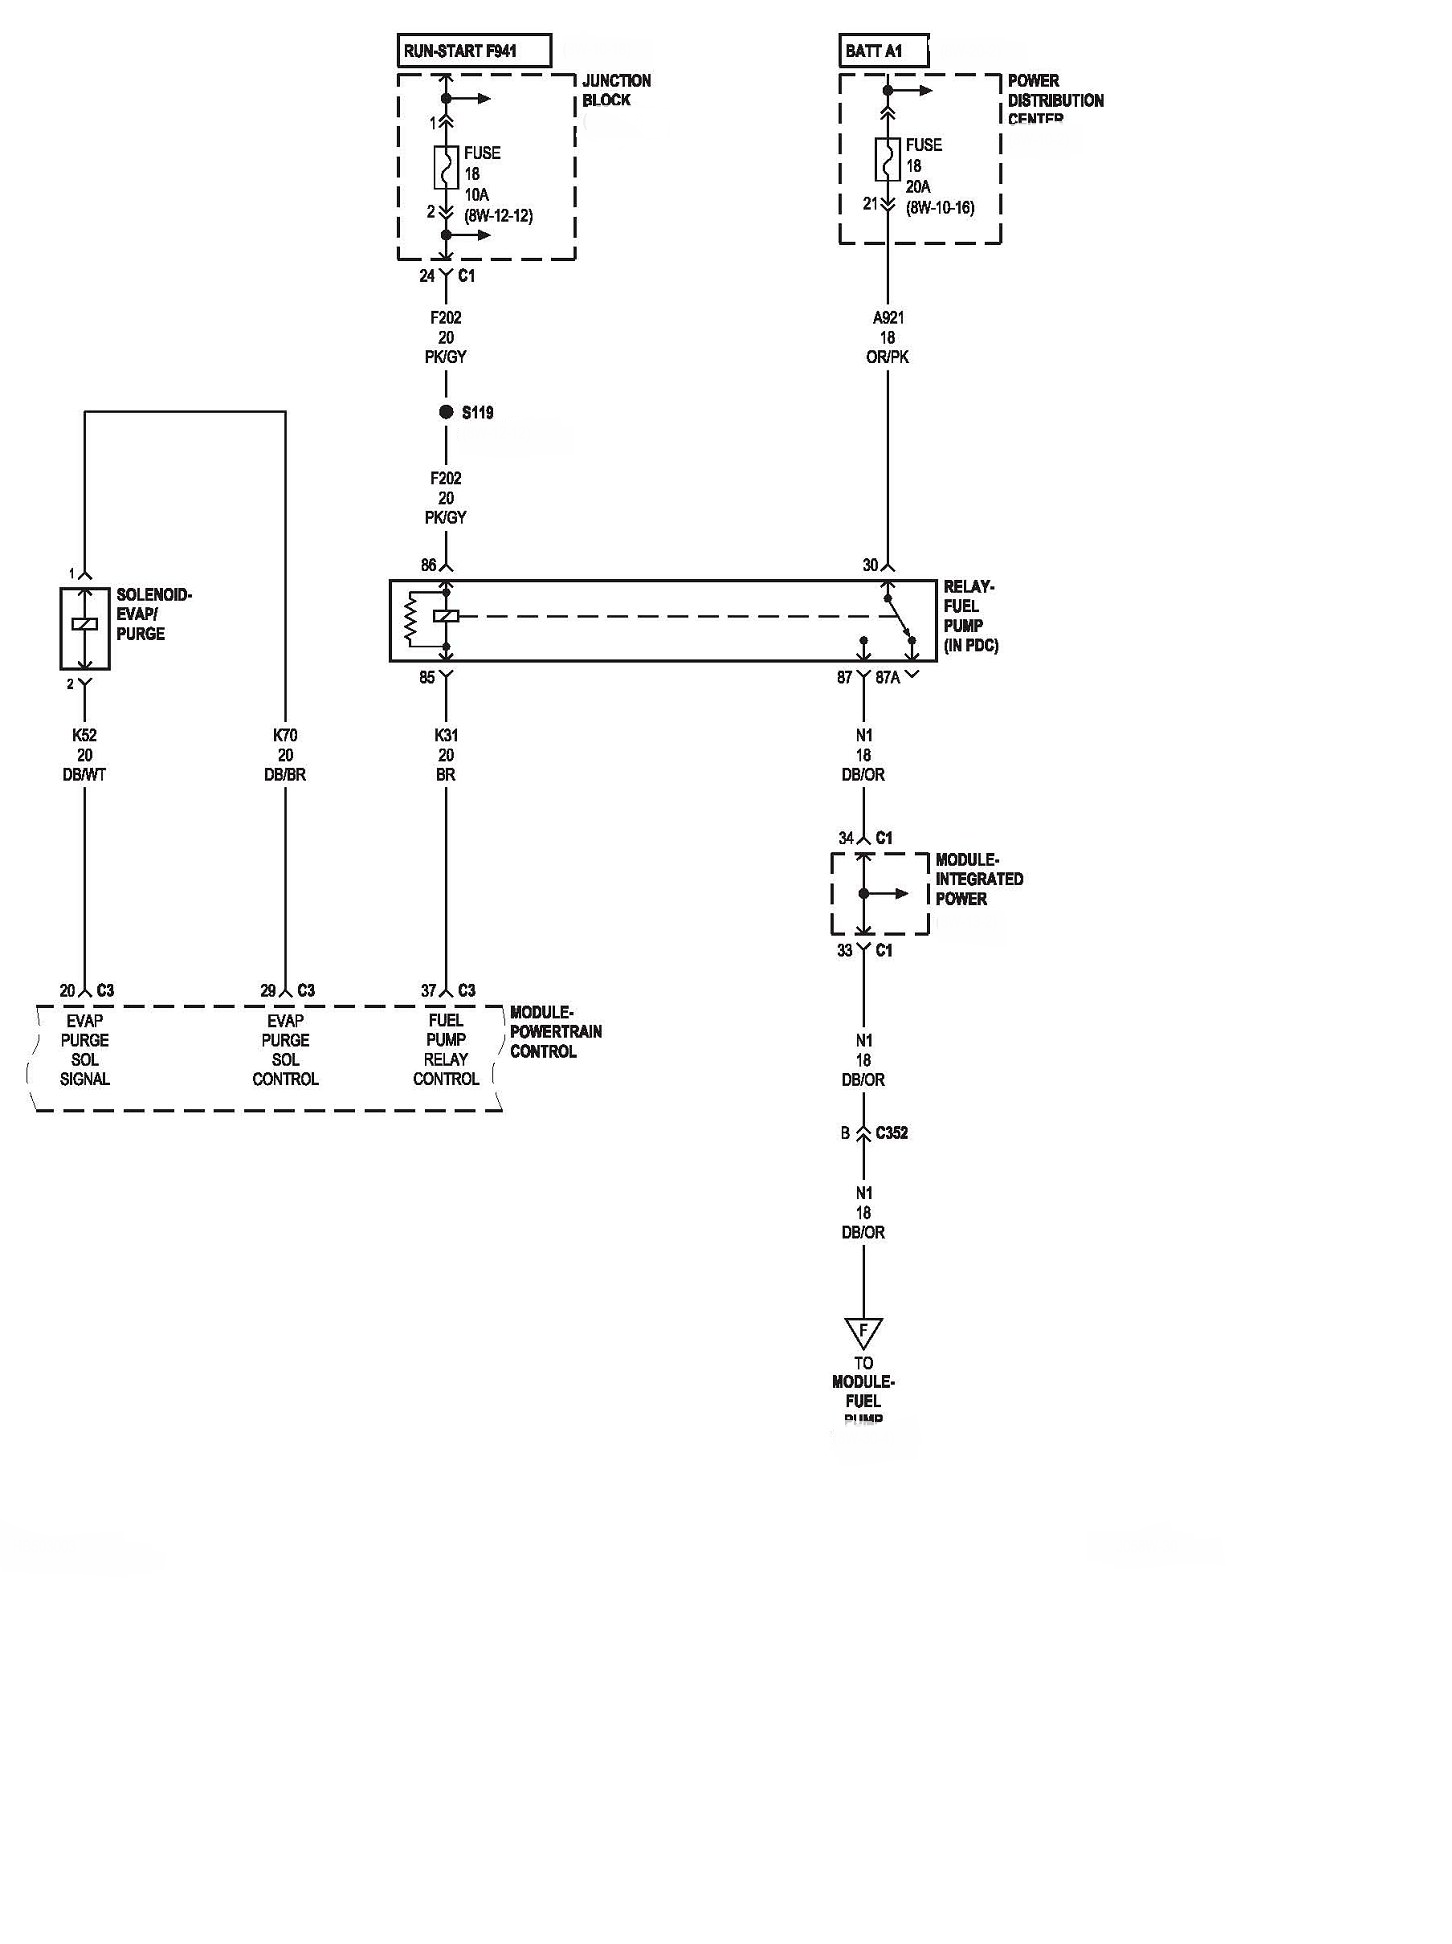 ... diagram of the fuel pump relay. graphic